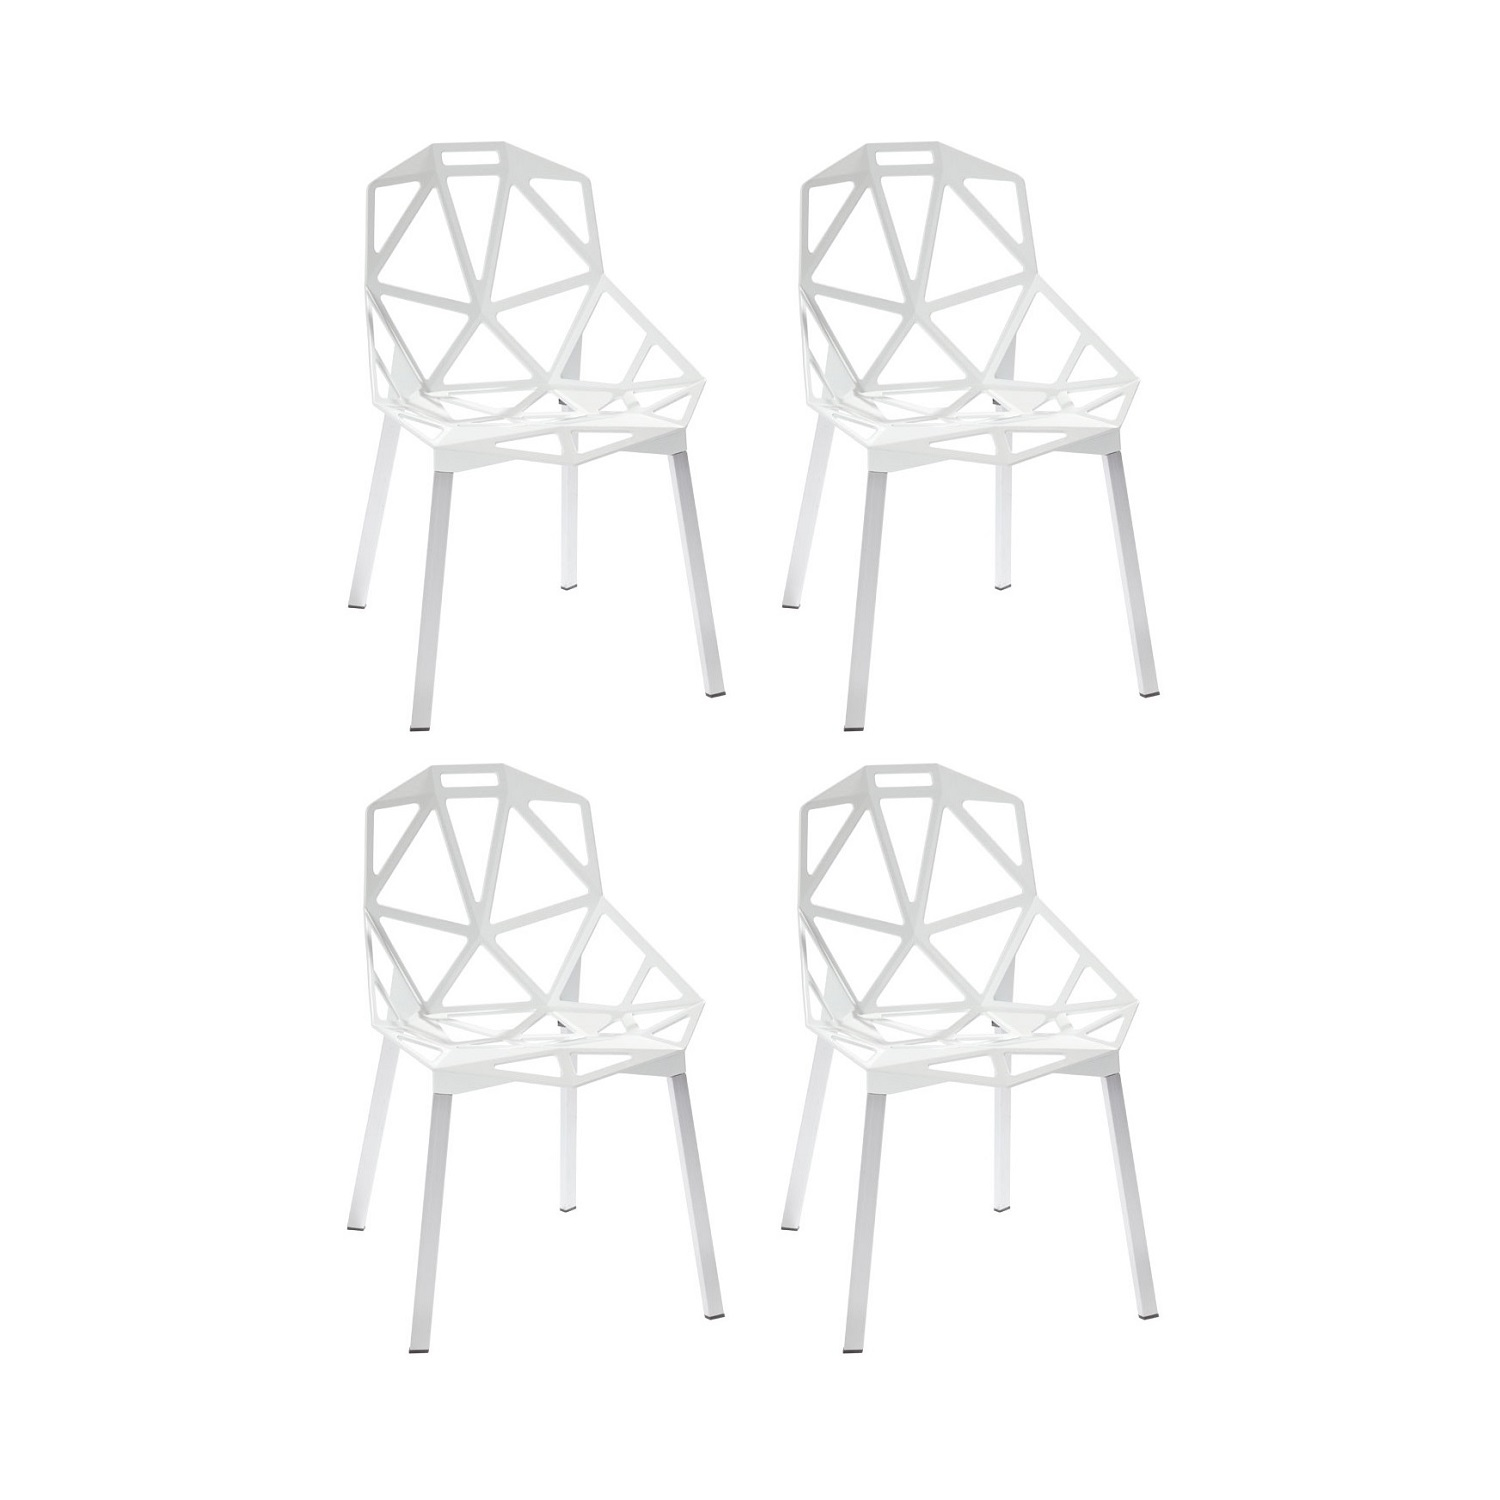 Konstantin Grcic Chair One Replica Konstantin Grcic Chair One